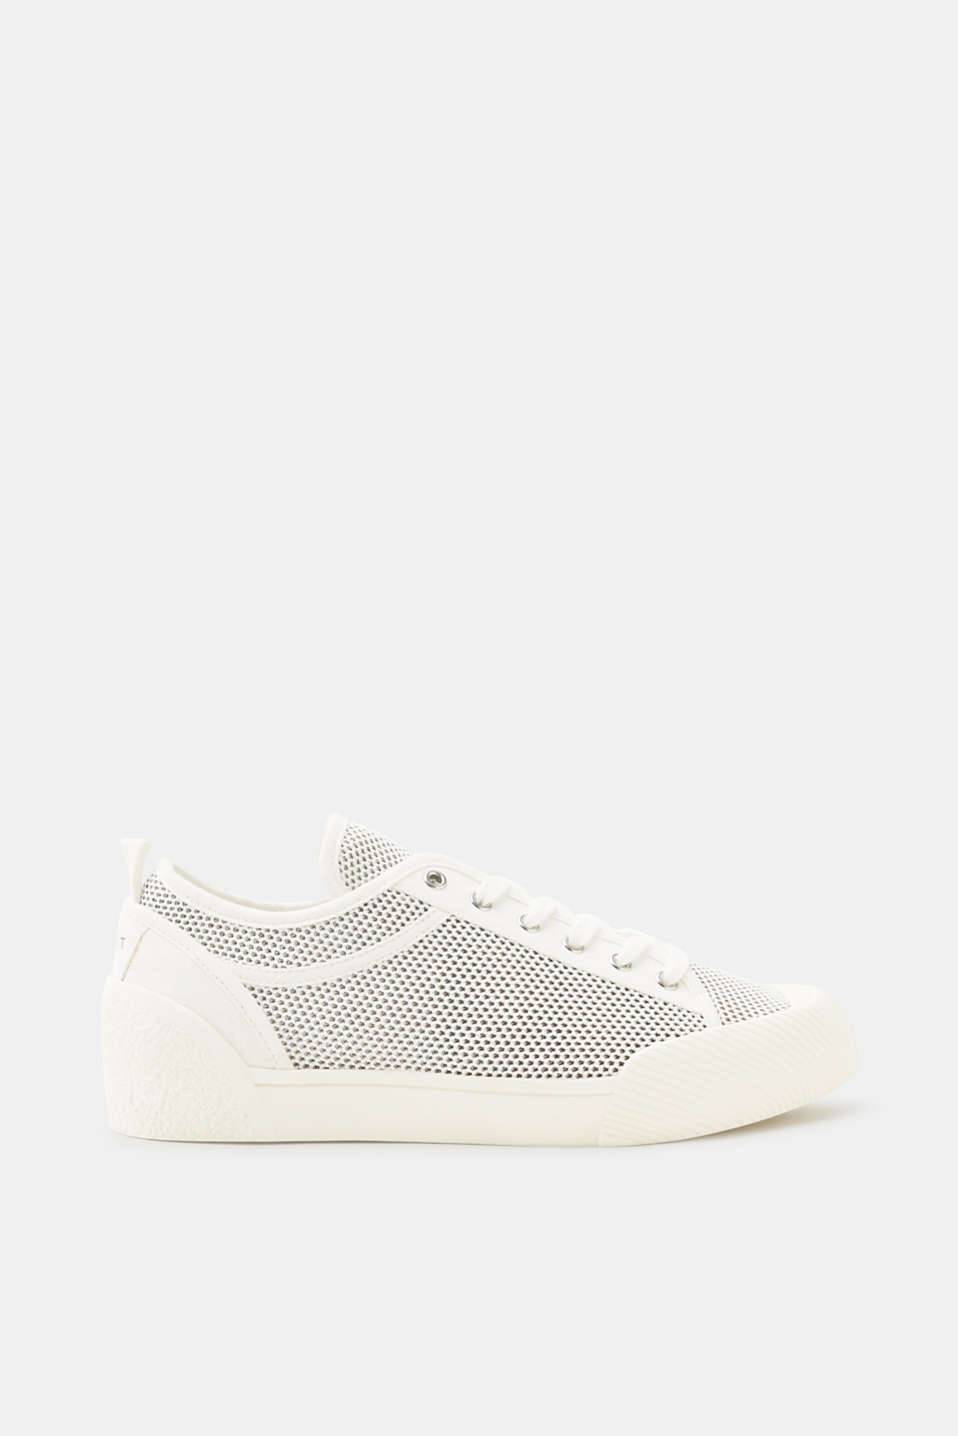 Det sporty high tech-mesh gør disse sneakers supertrendy.